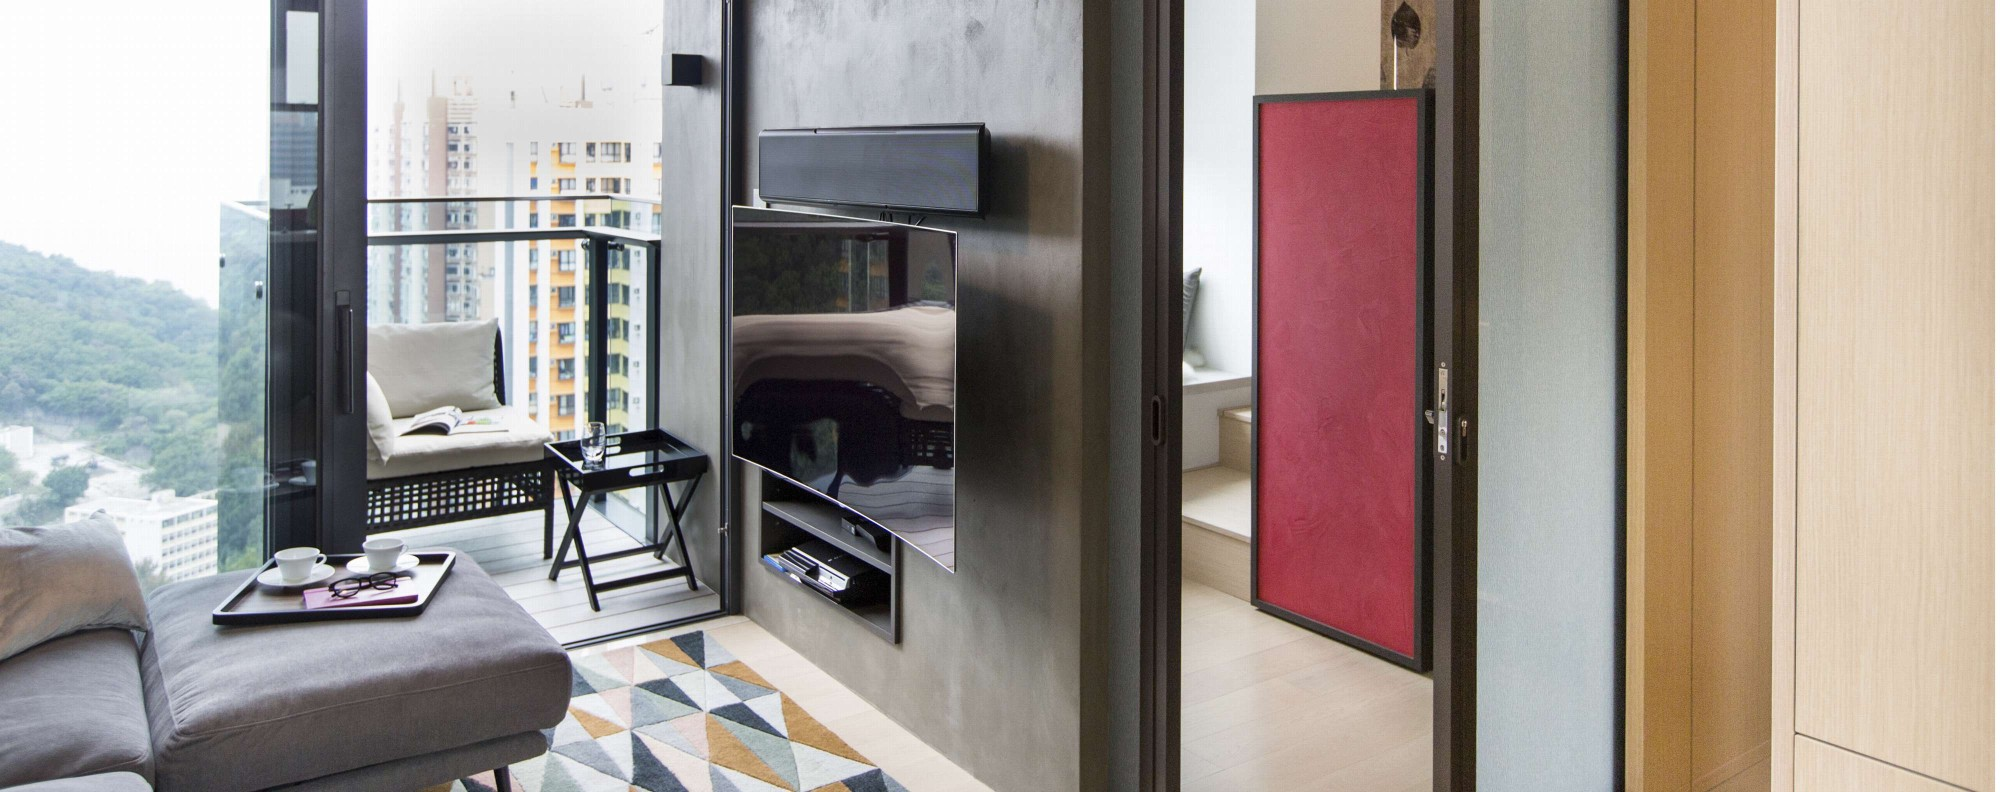 A small smart hong kong apartment packed with personality for Small apartment interior design hong kong